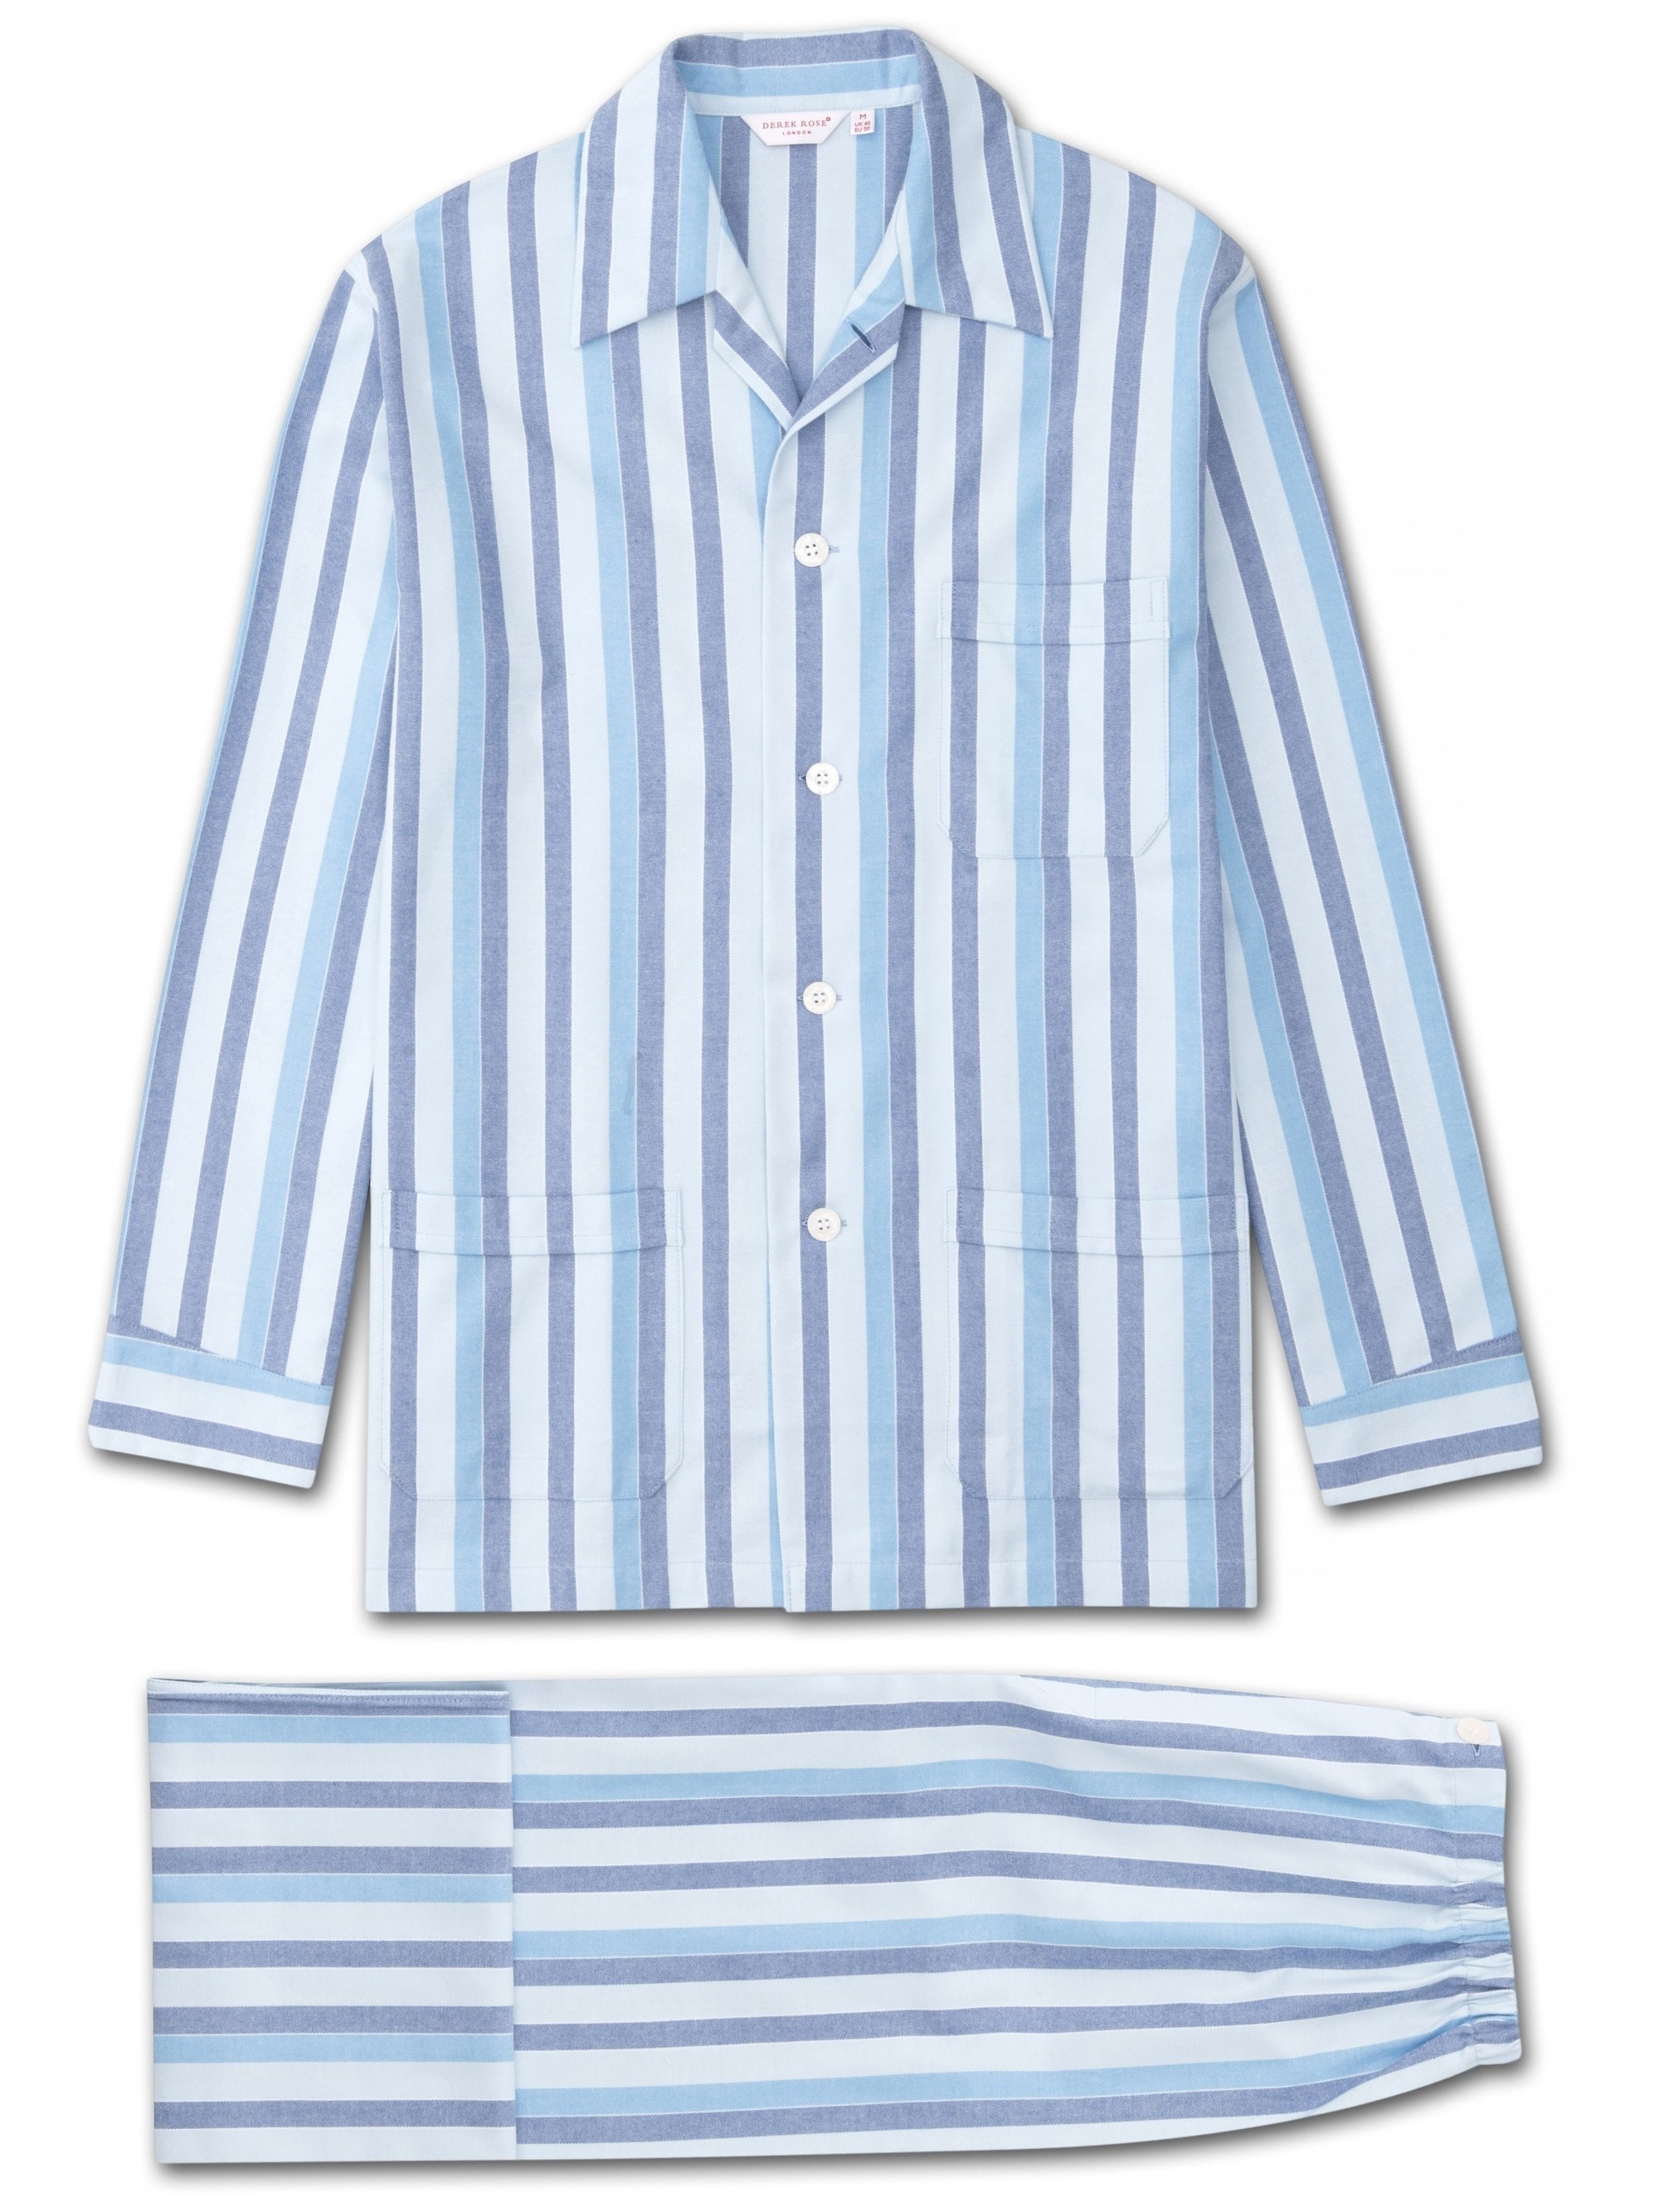 Men's Classic Fit Pyjamas Arctic 20 Brushed Cotton Blue